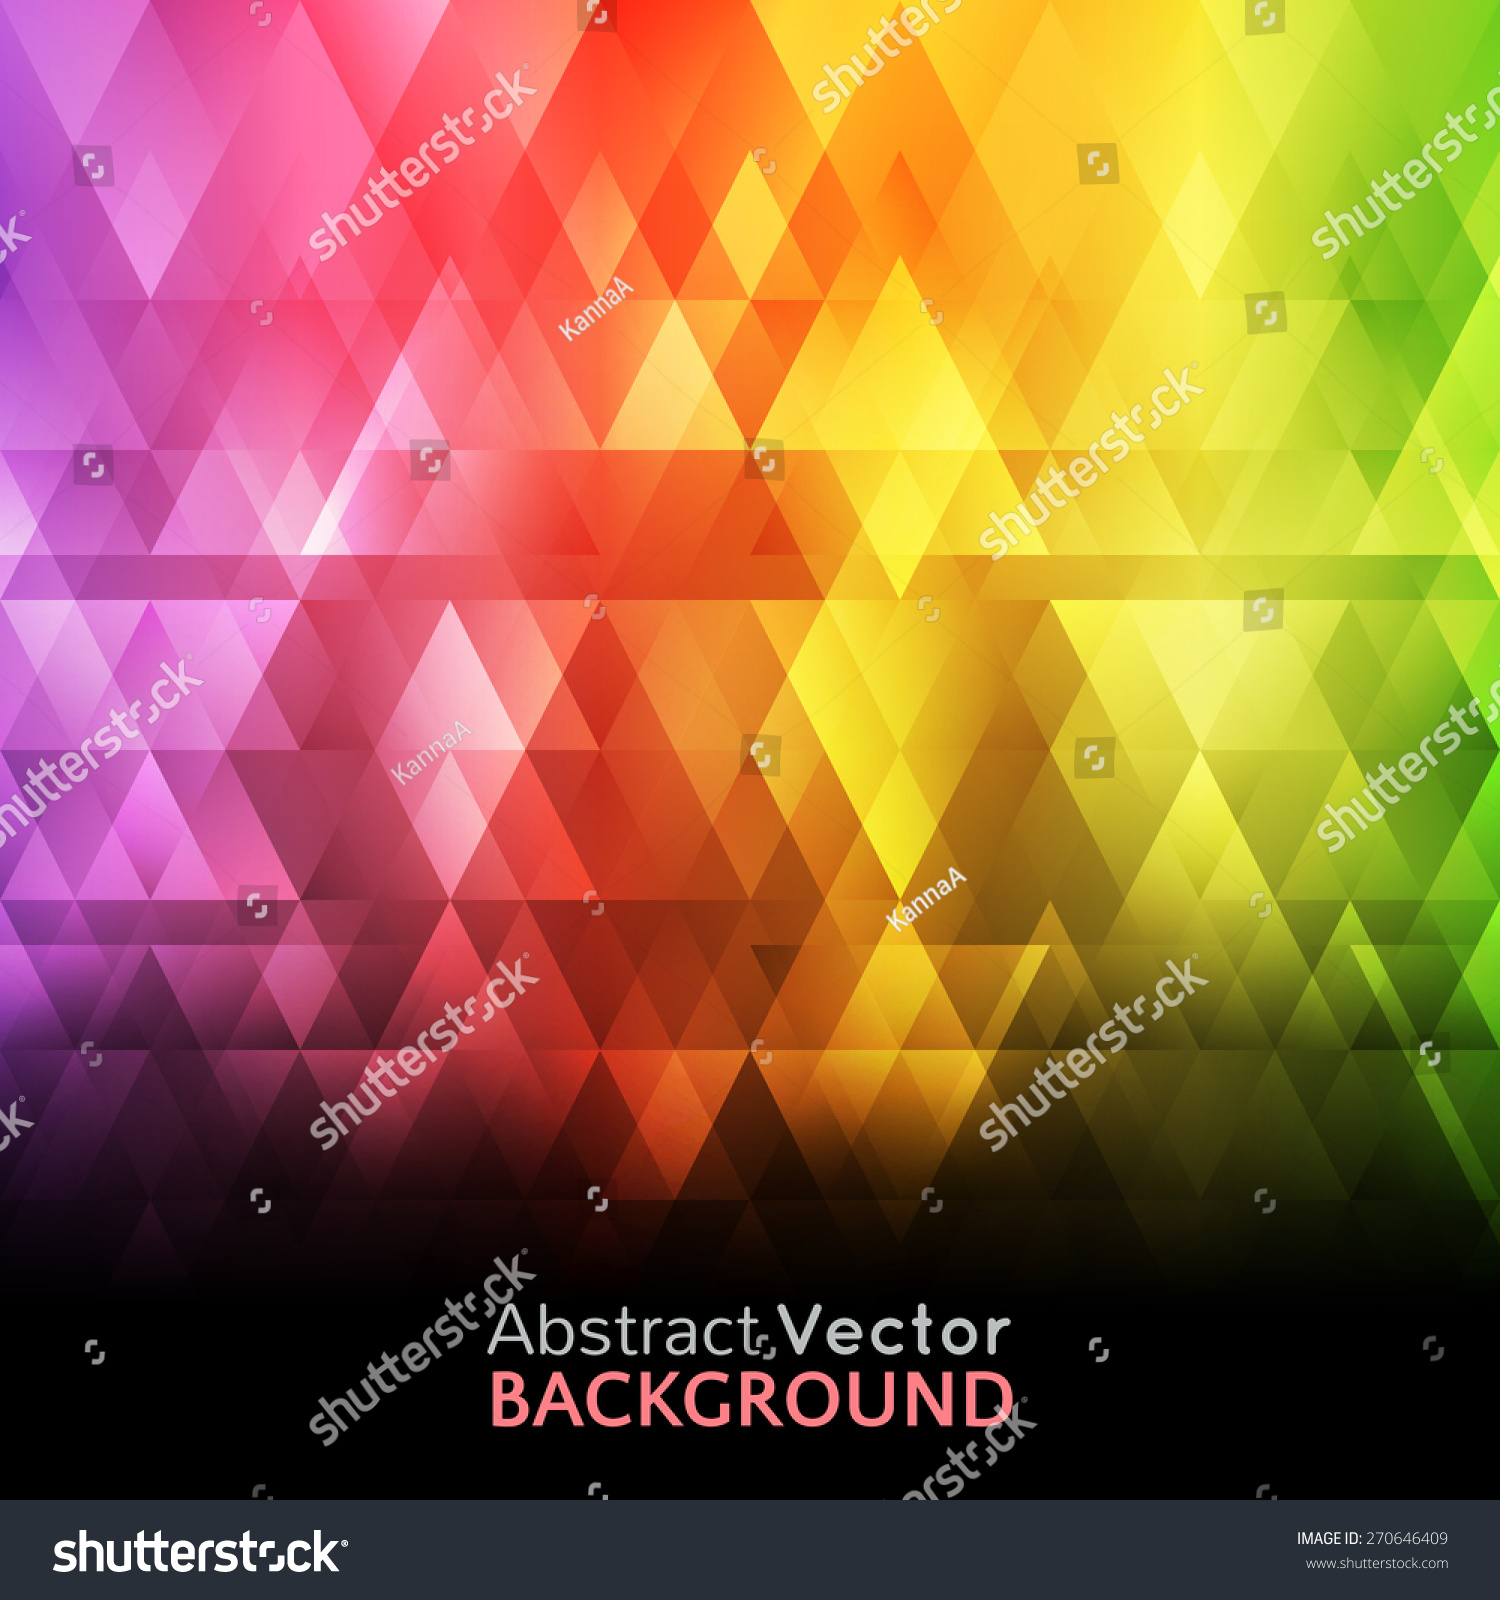 Pics photos tutorial background abstrak pelangi - Abstract Bright Spectrum Wallpaper Vector Illustration For Modern Disco Design Cool Pattern Background